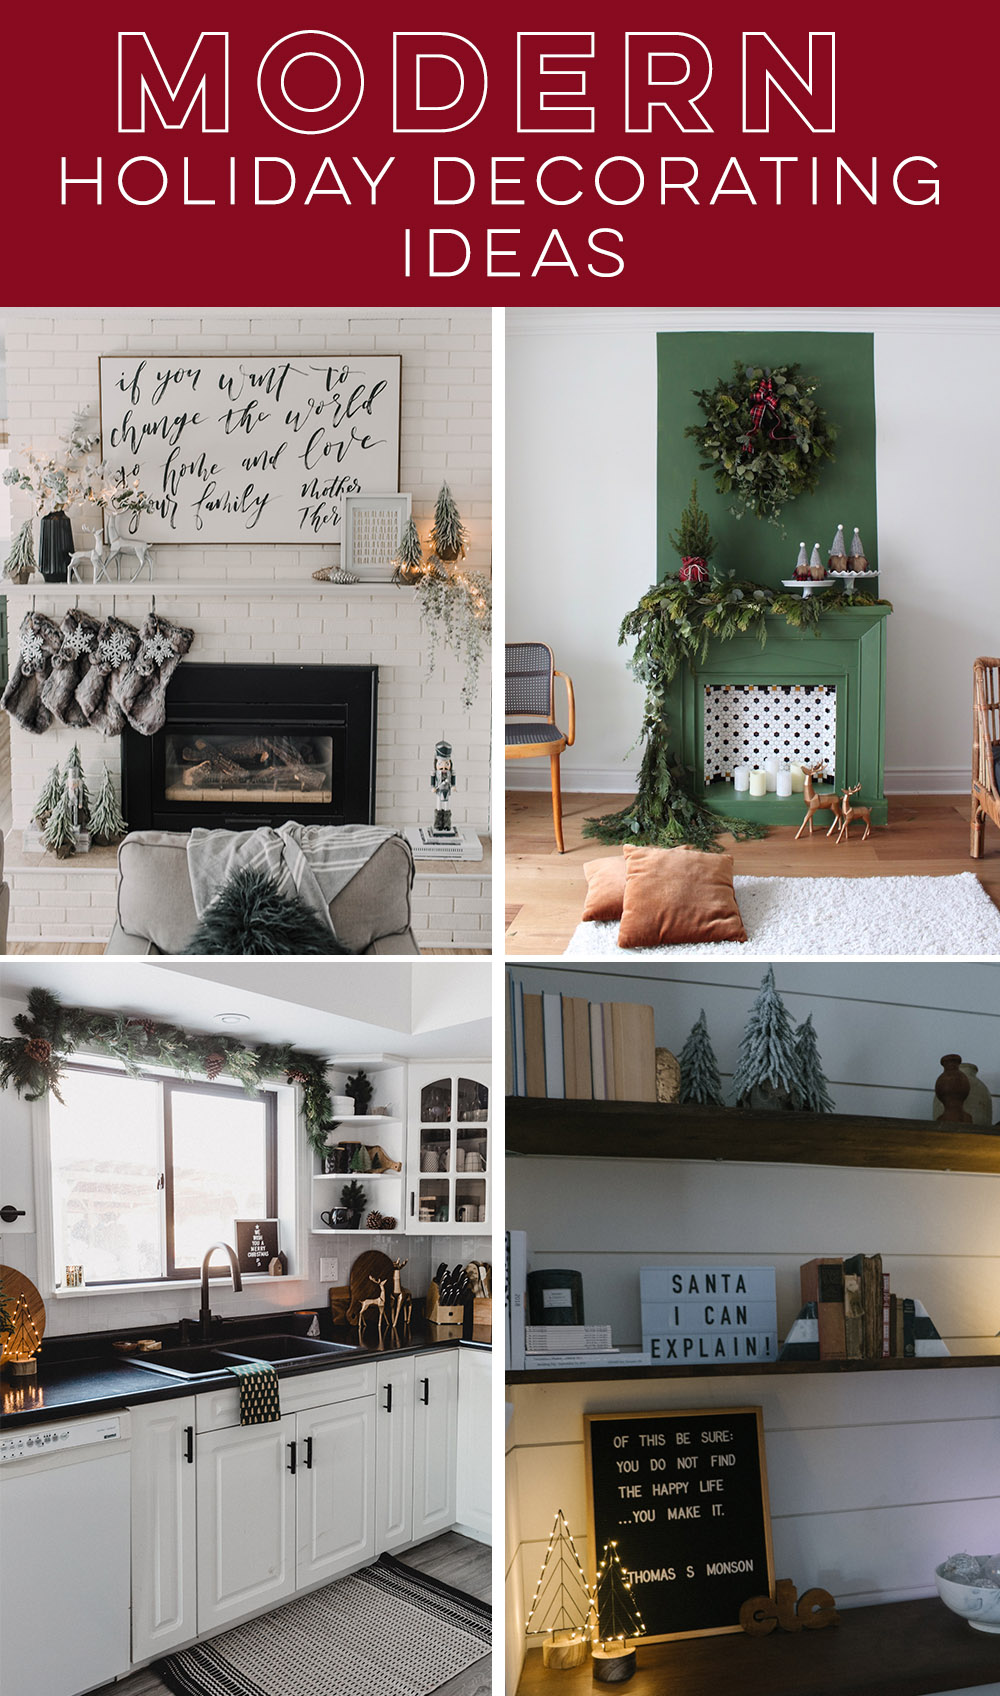 Modern holiday decorating ideas- love those mantels!